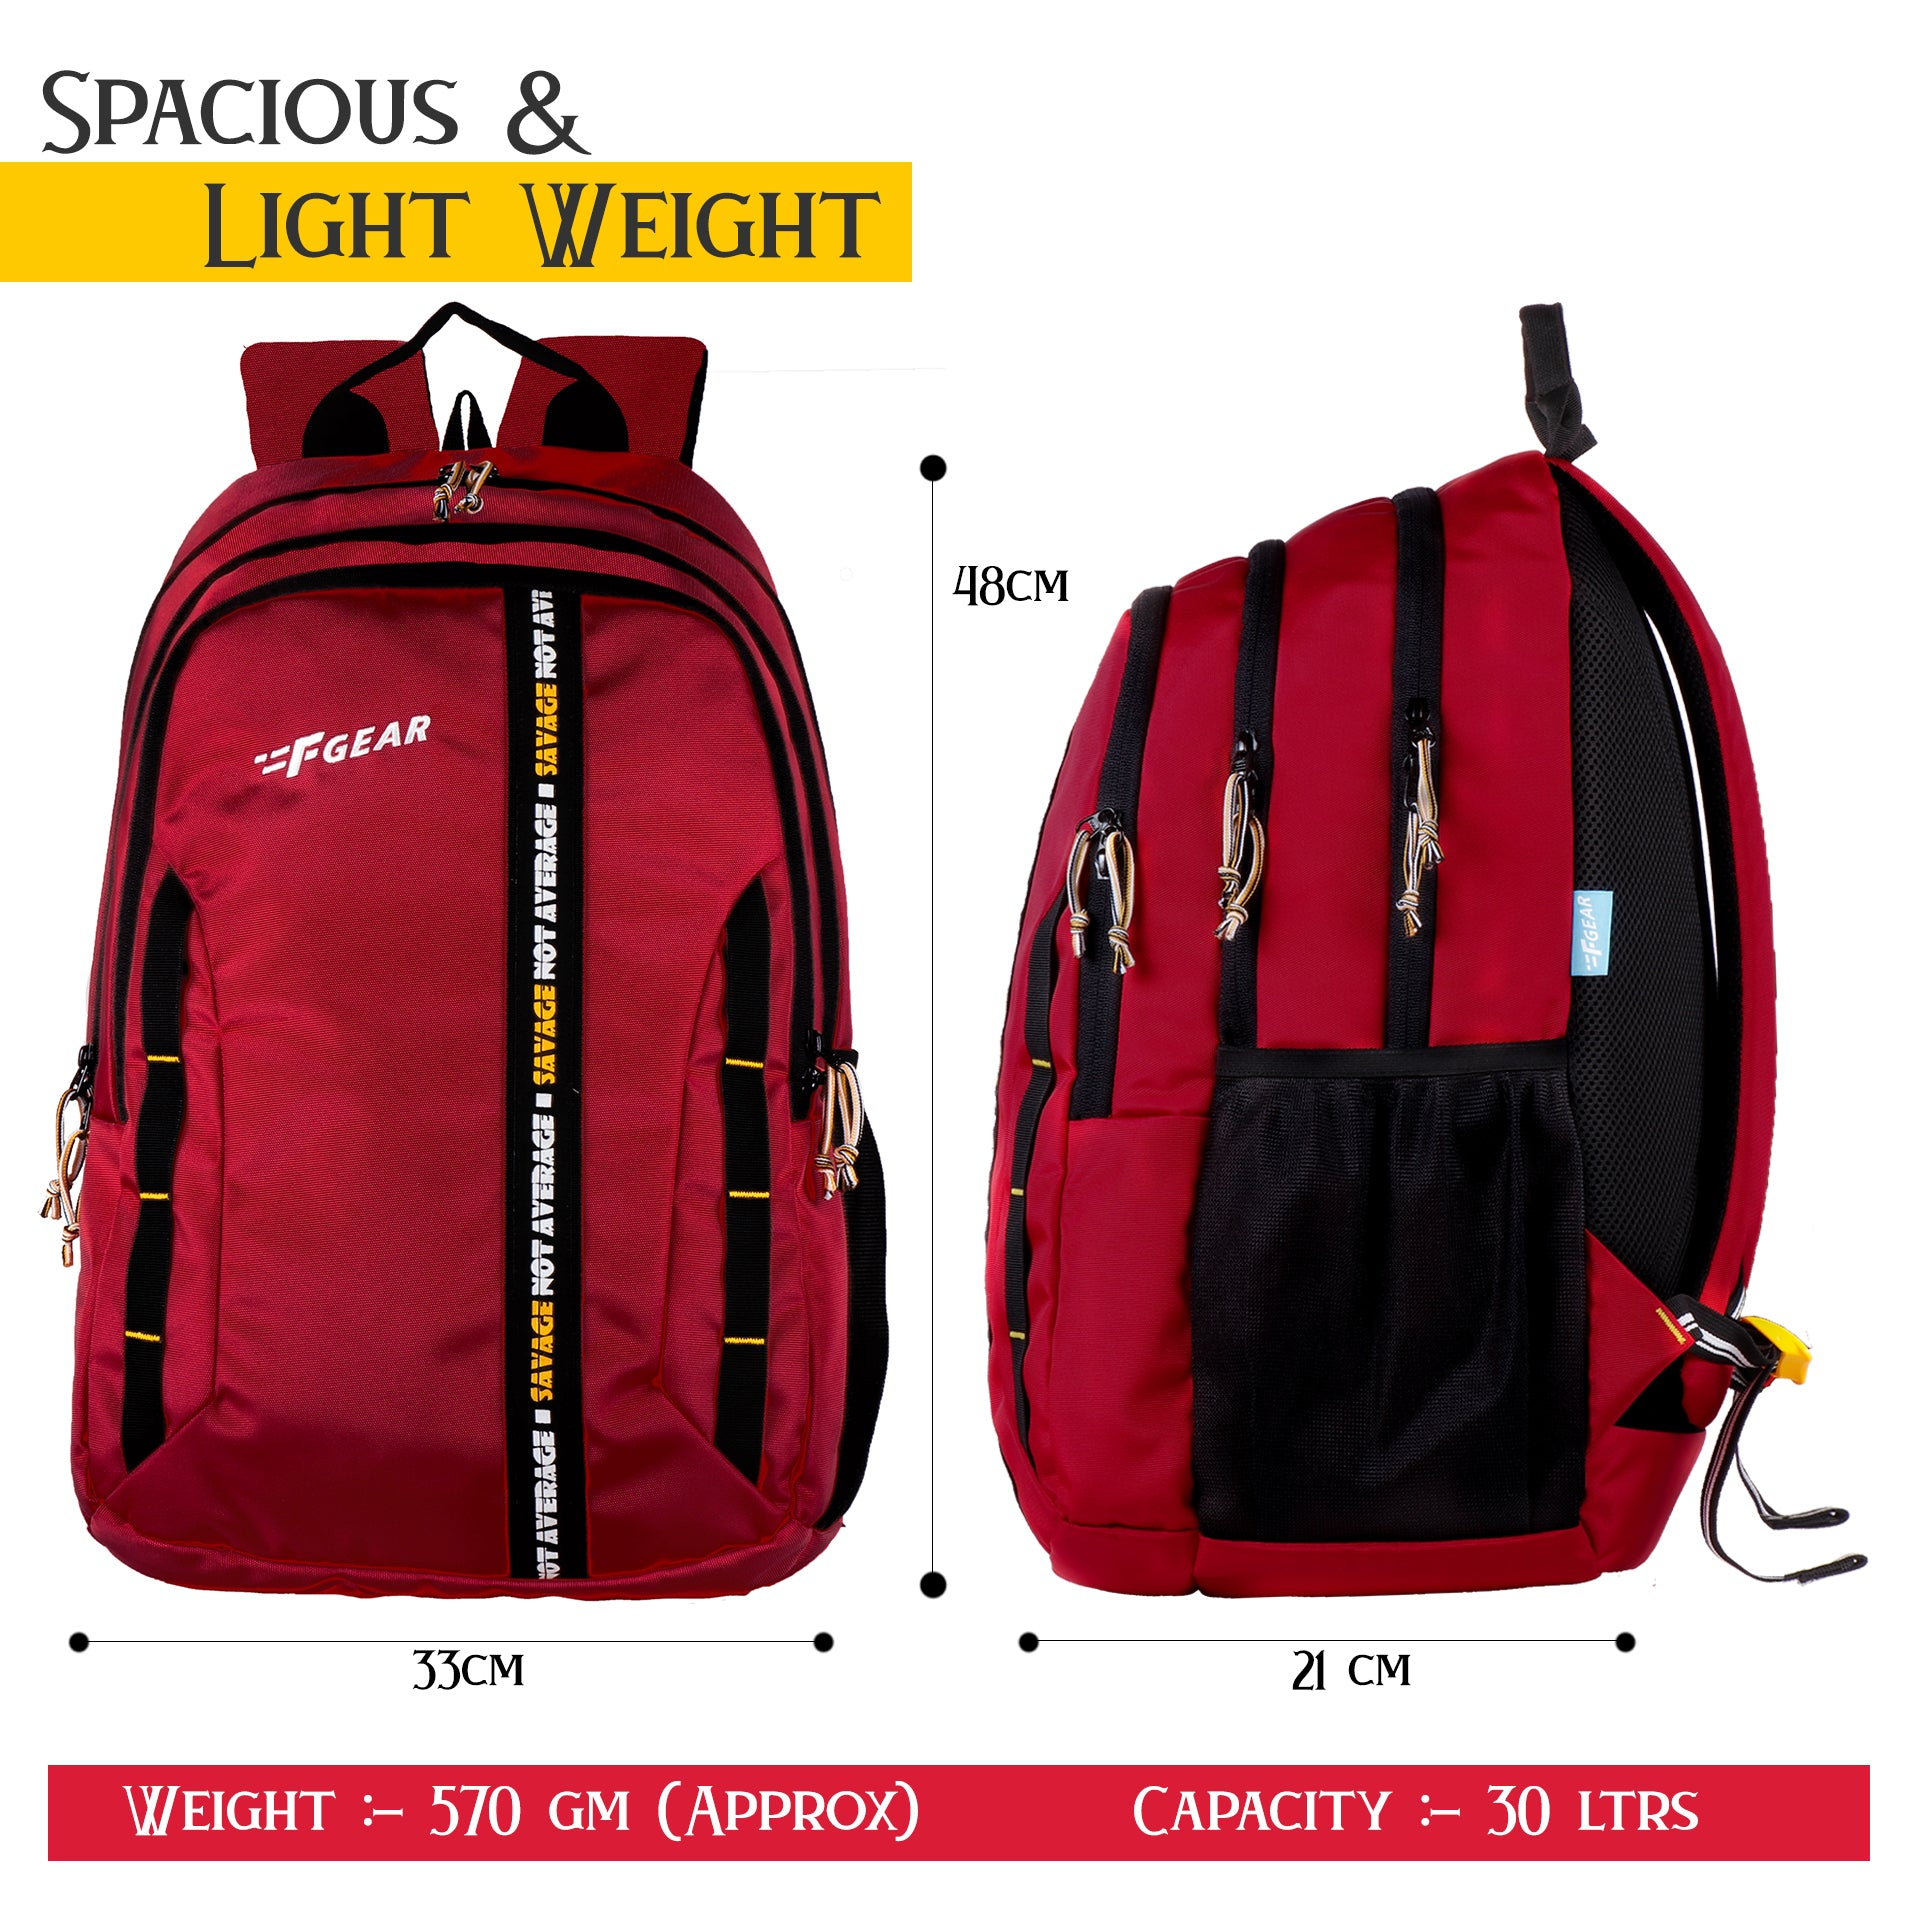 F Gear Raider guc red 30 Liter Backpack with Rain Cover (3307)